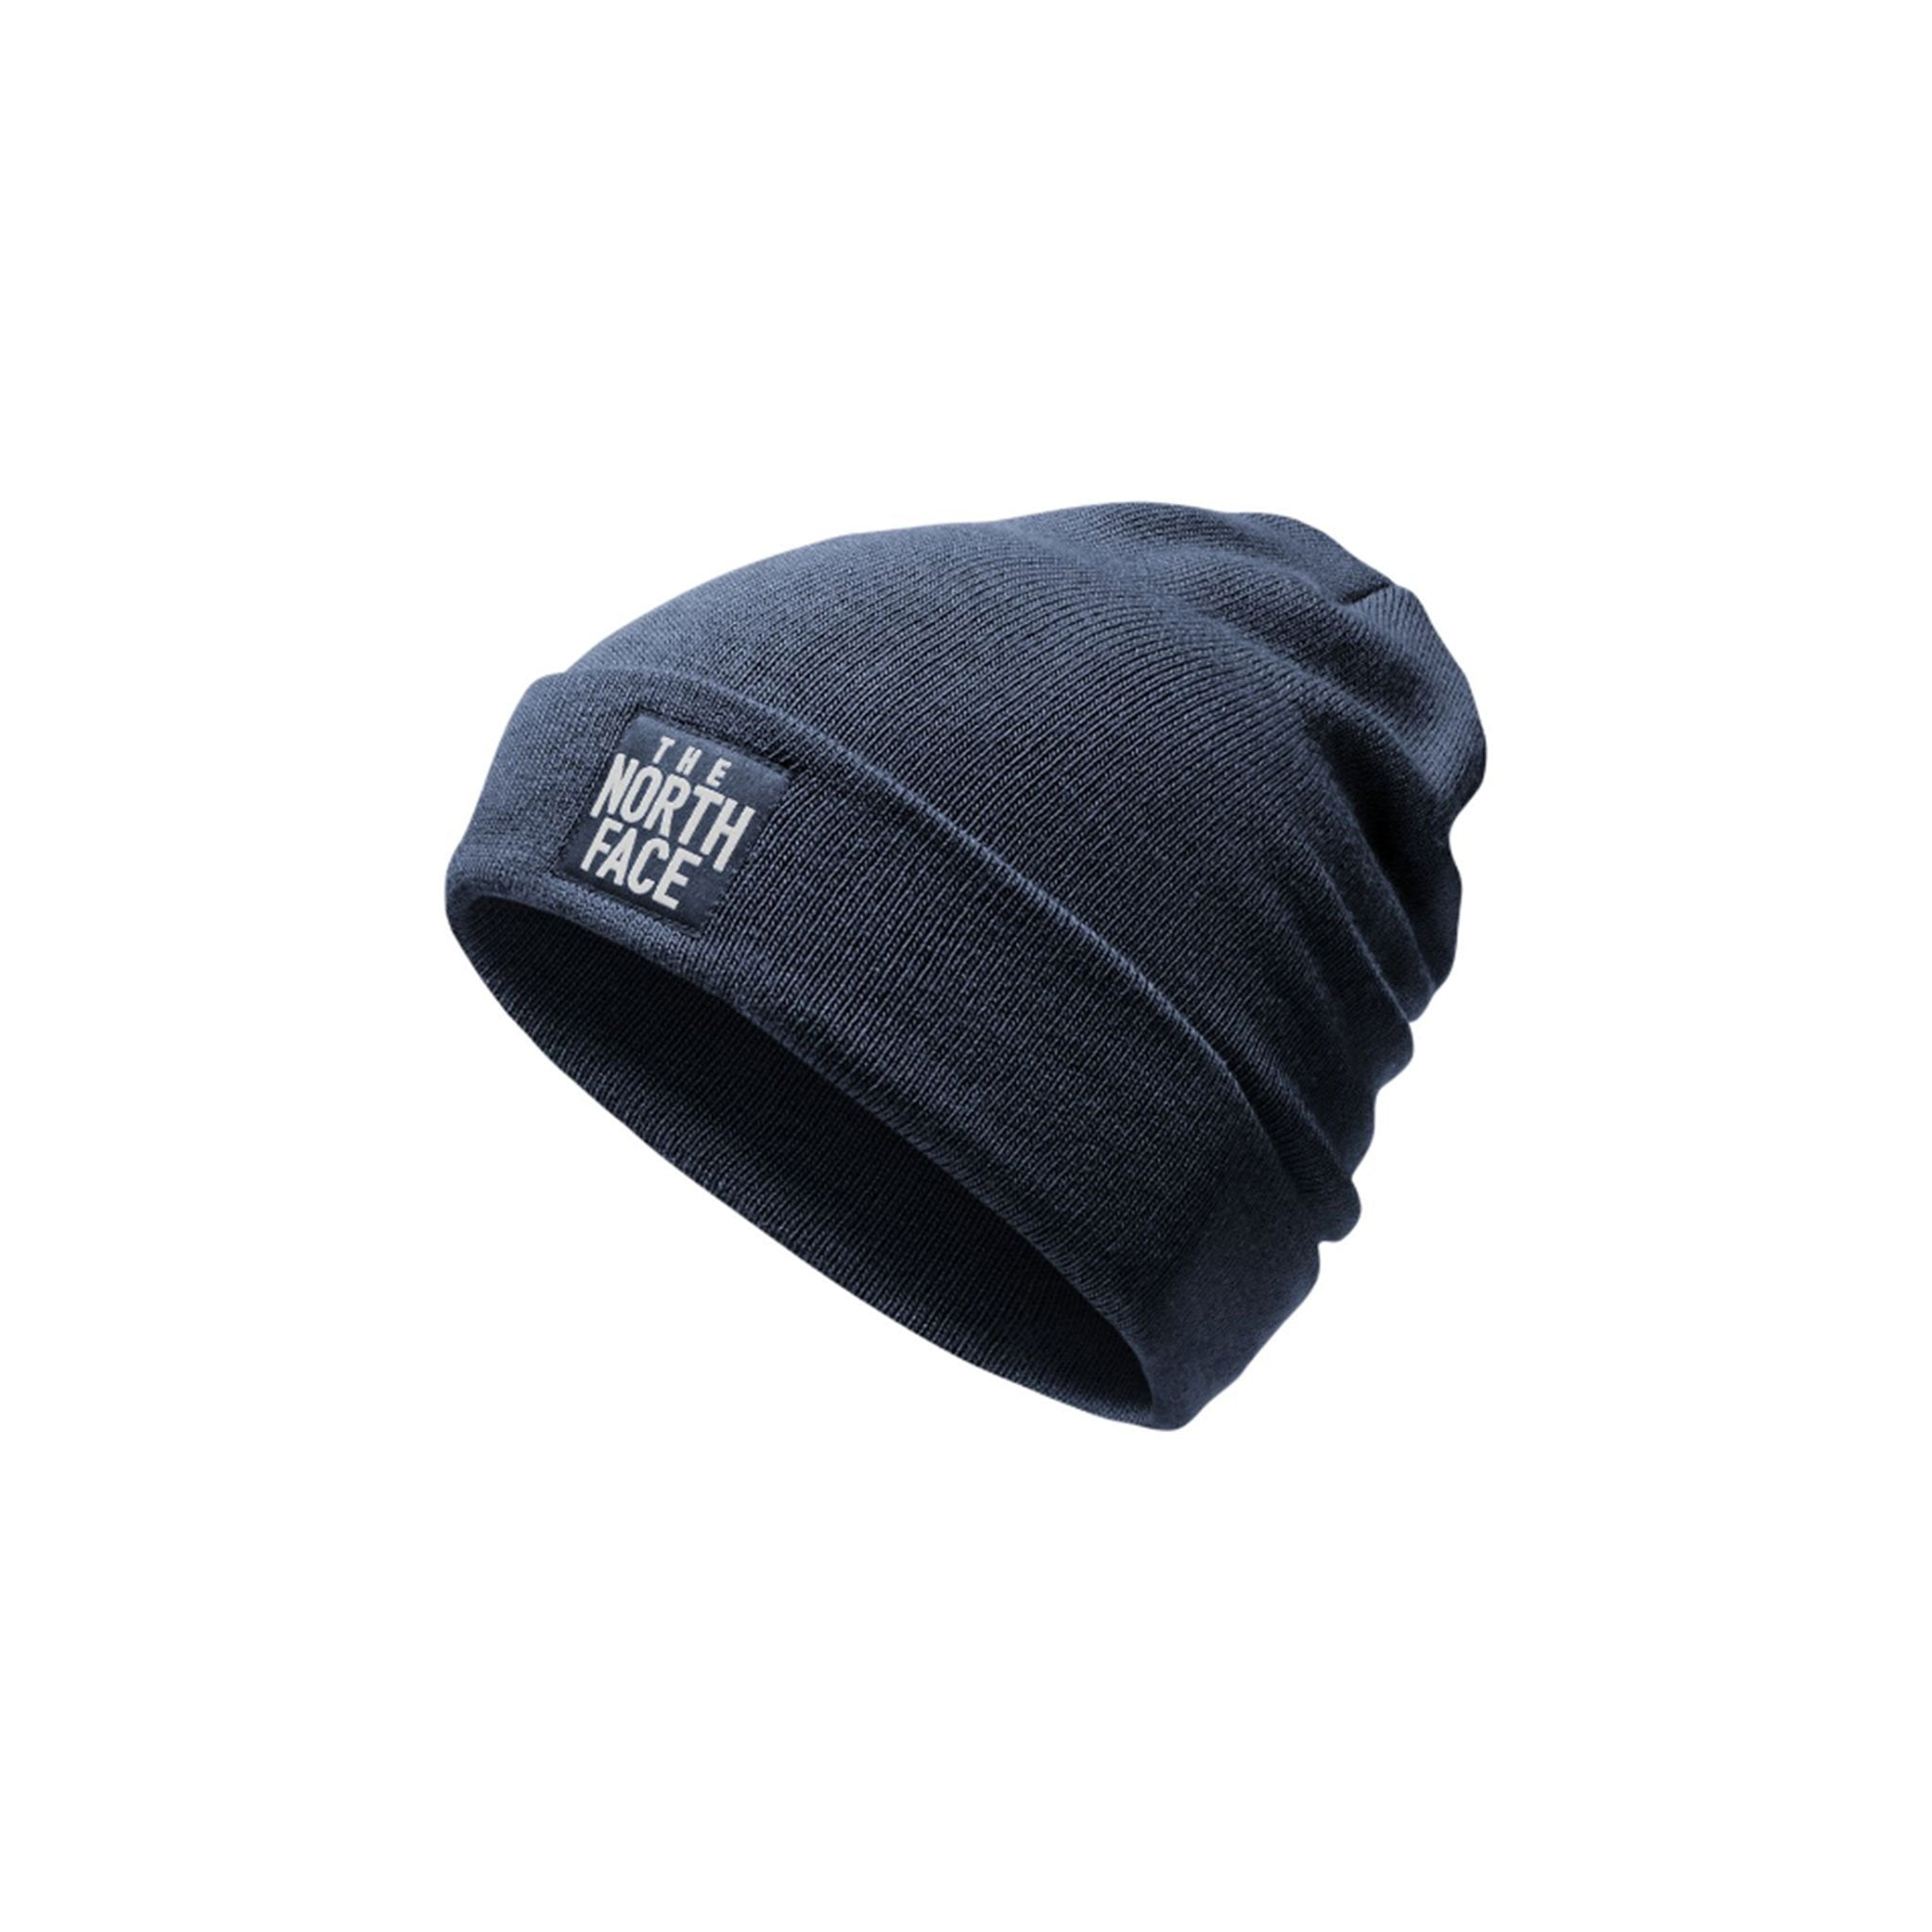 2bcccca648b The North Face Dock Worker Beanie - Alpine Start Outfitters